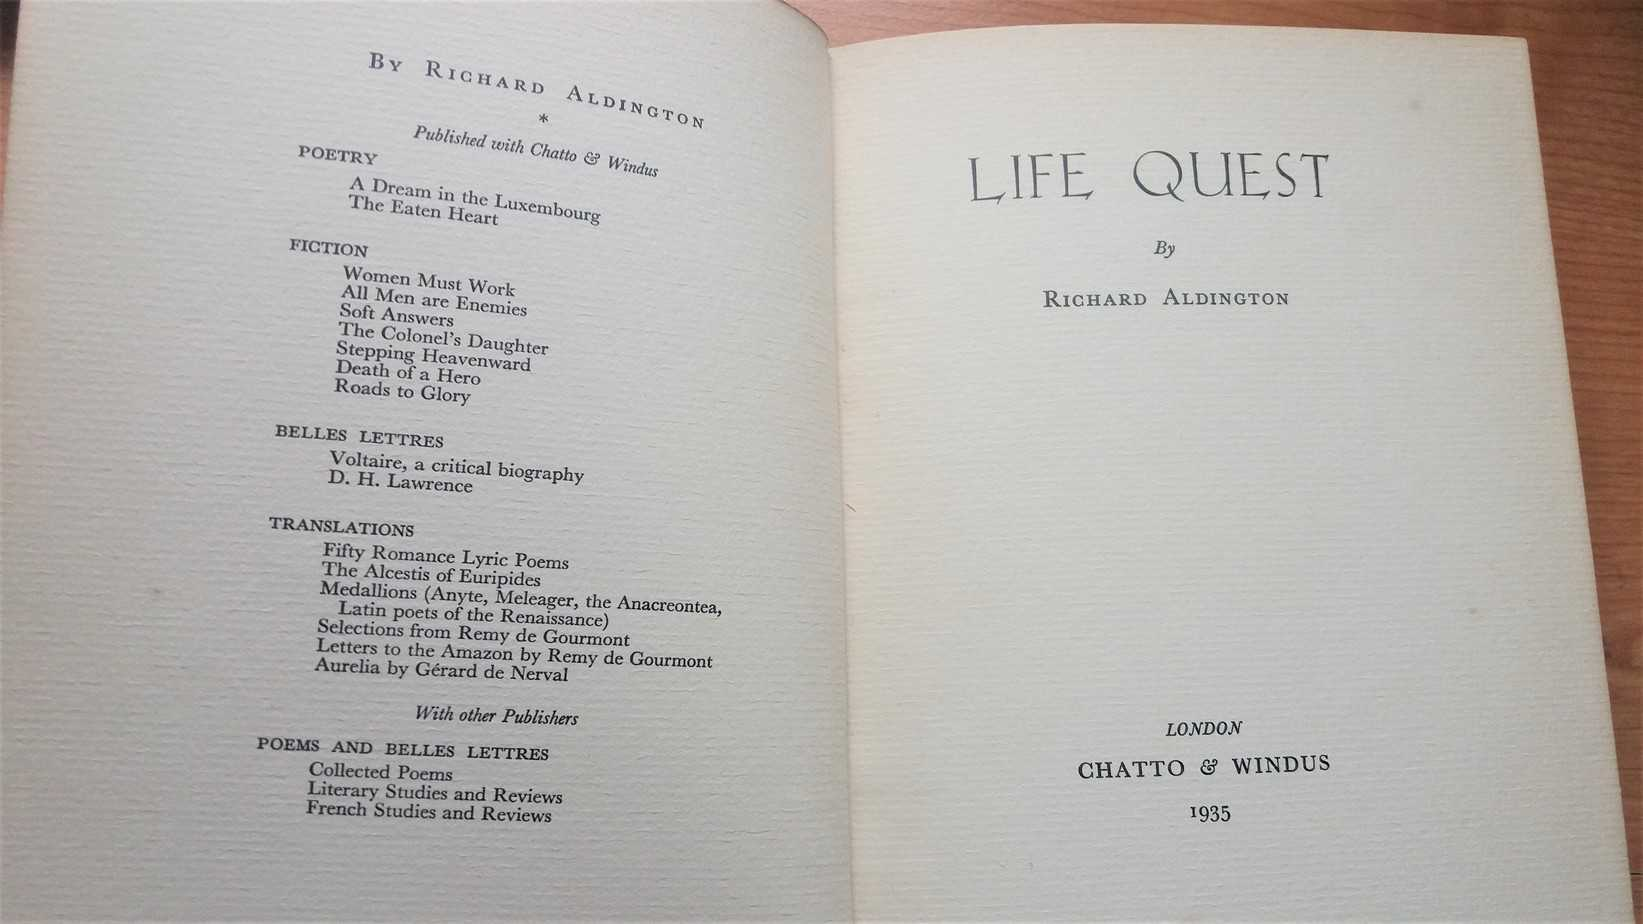 The Anxiety of the Thirties: Richard Aldington's Life Quest